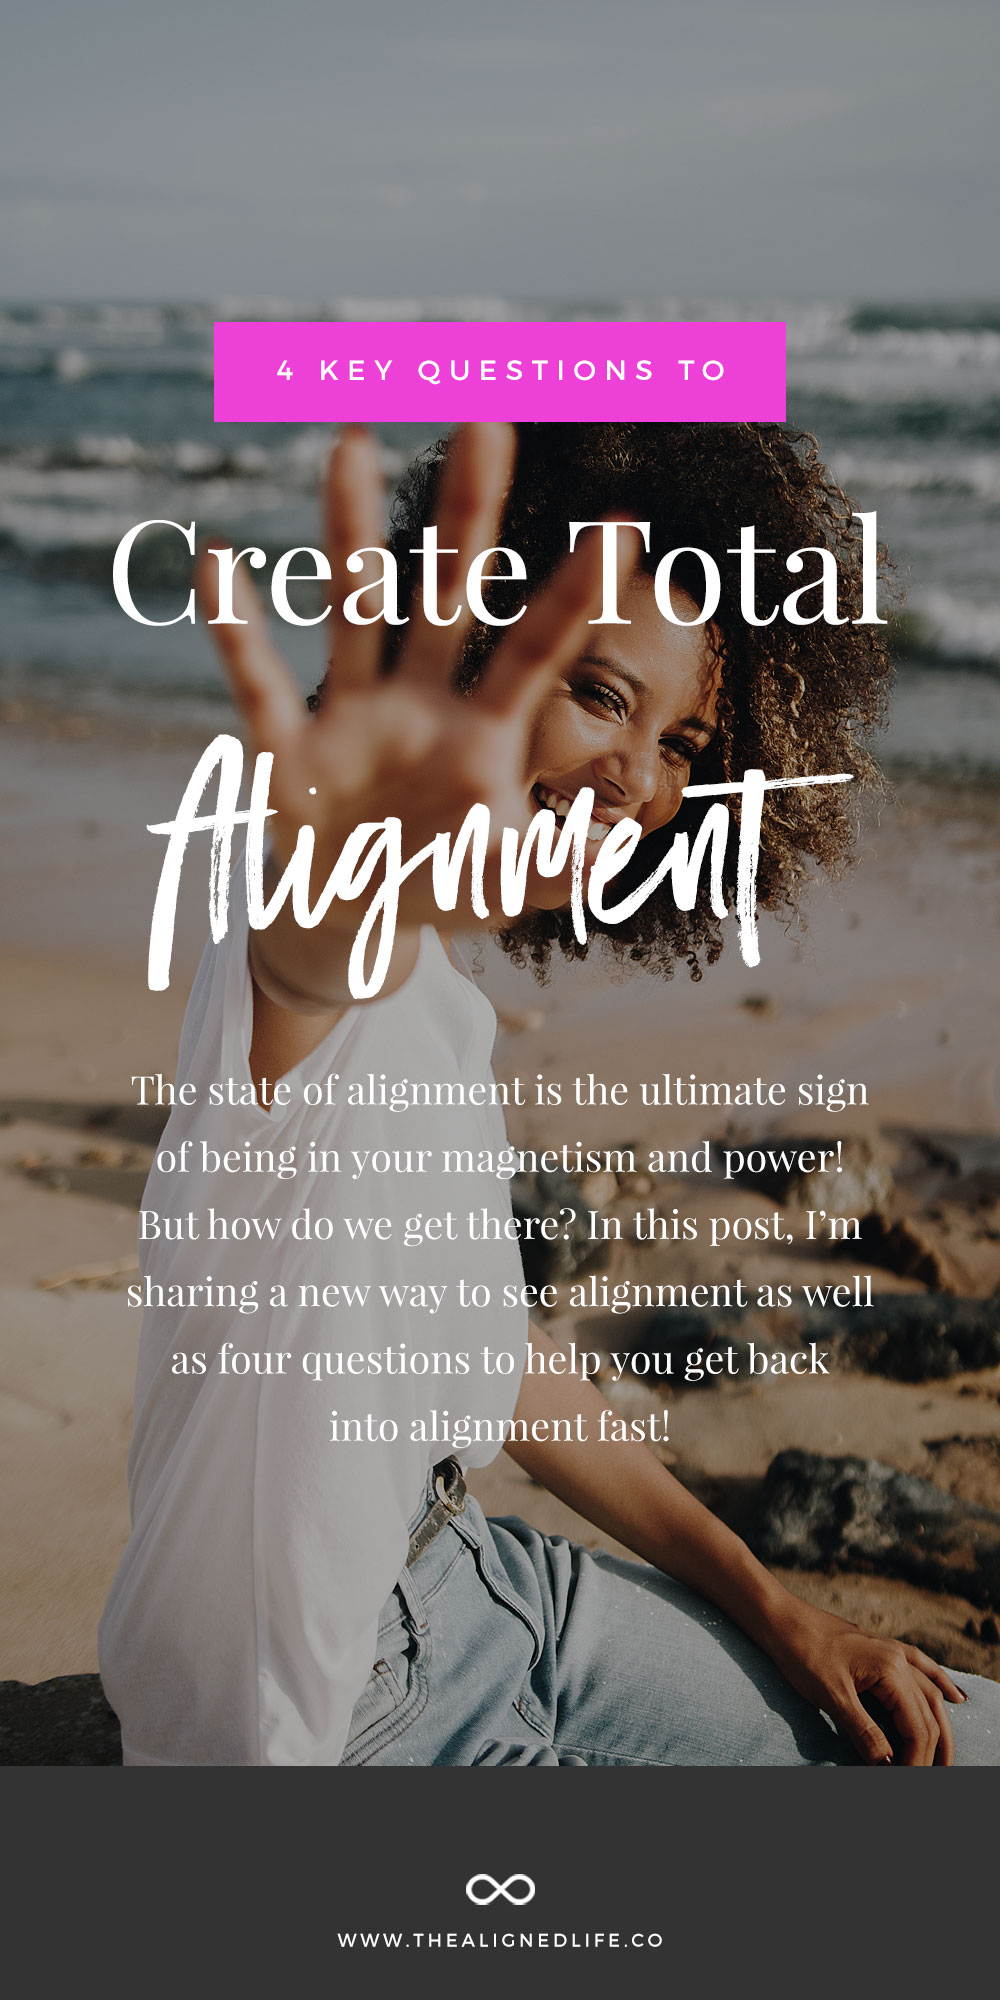 4 Key Questions To Create Total Alignment